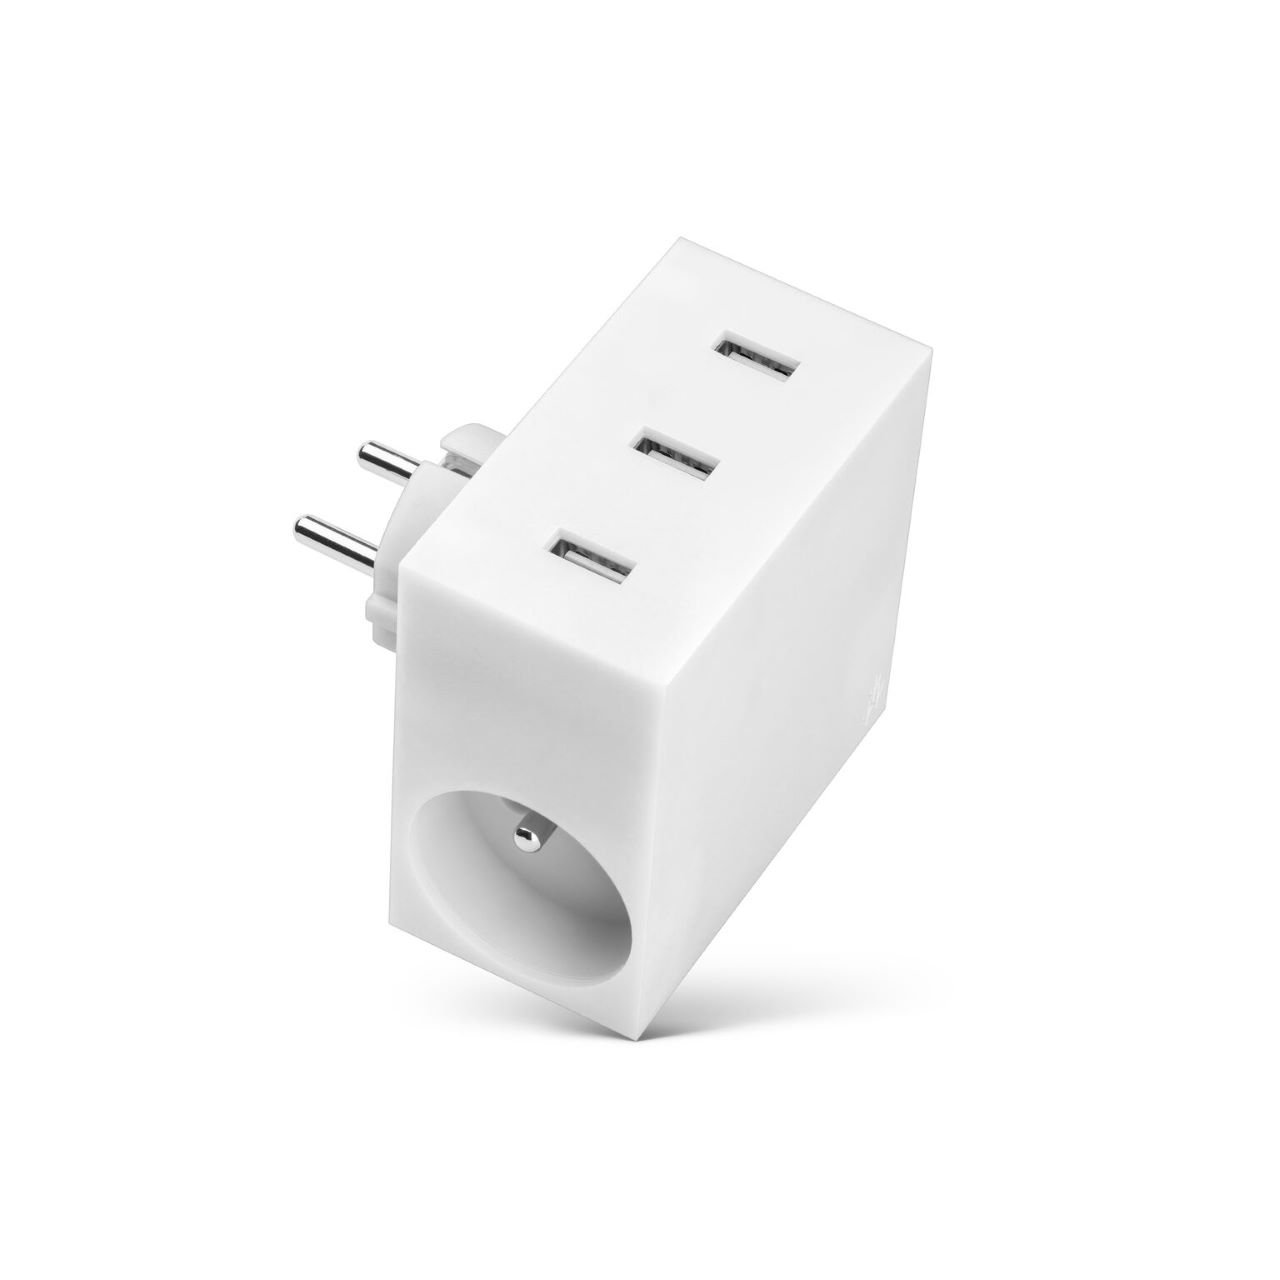 usbepower HIDE 5-in-1 wall-charger, weiß HIDE4.4WH